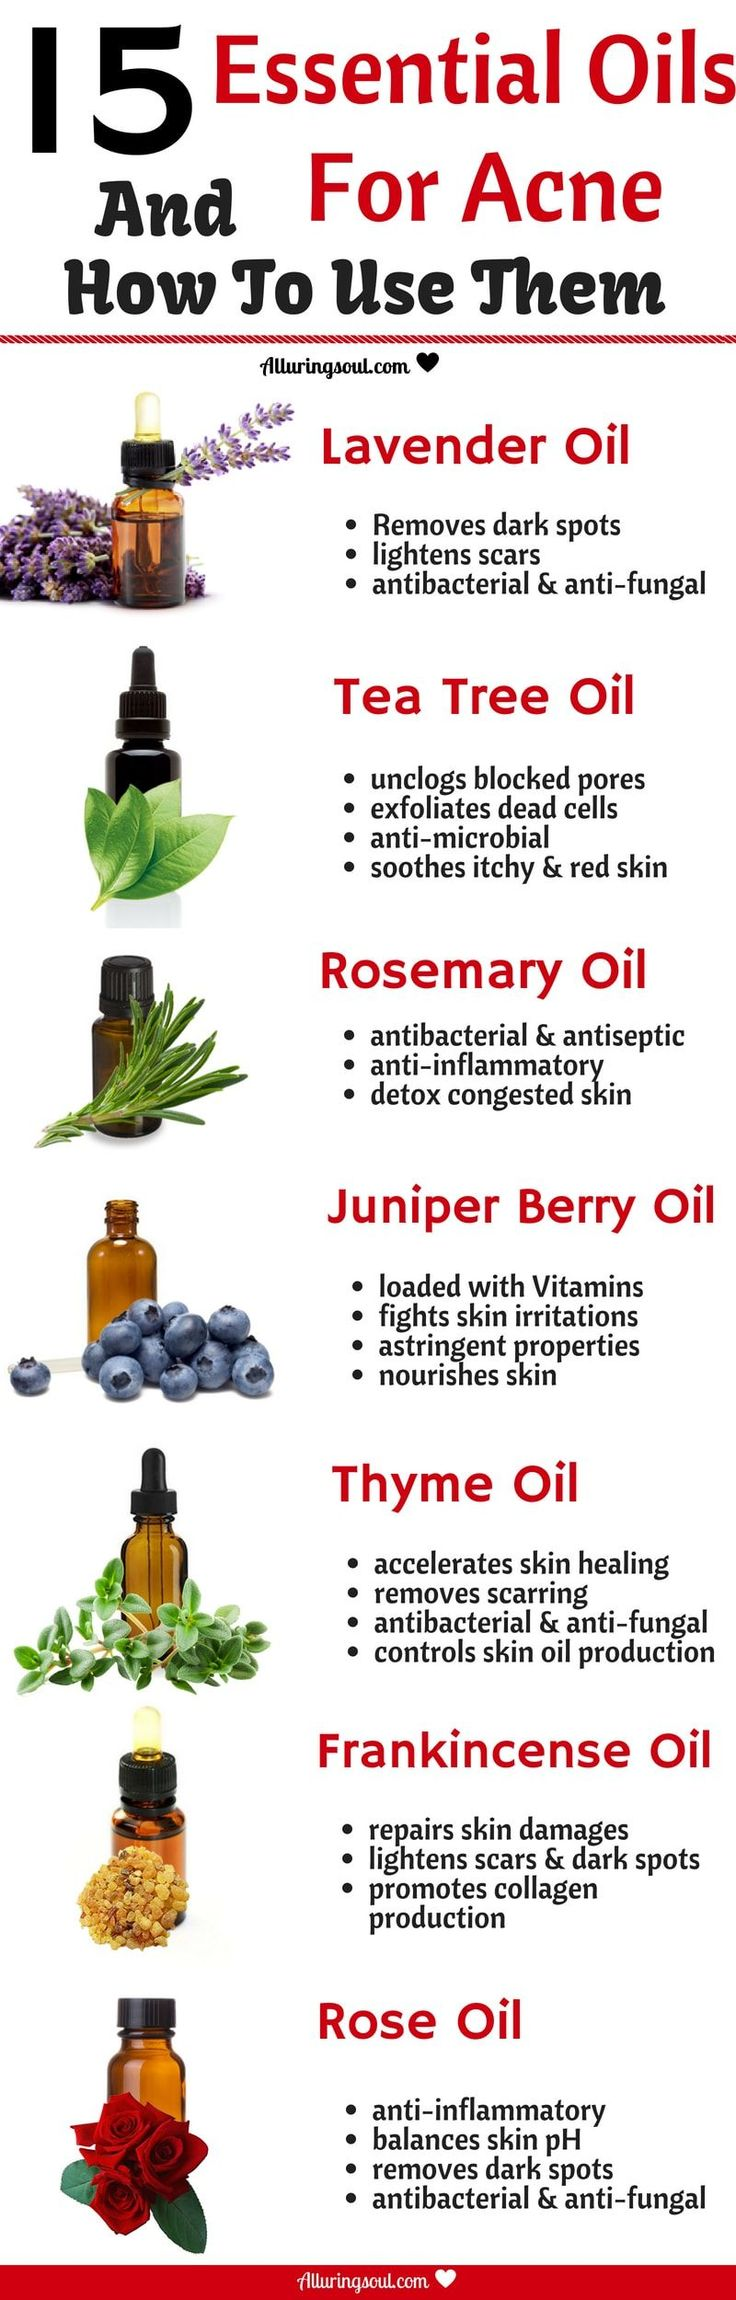 15 Best Essential Oils For Acne And Recipes